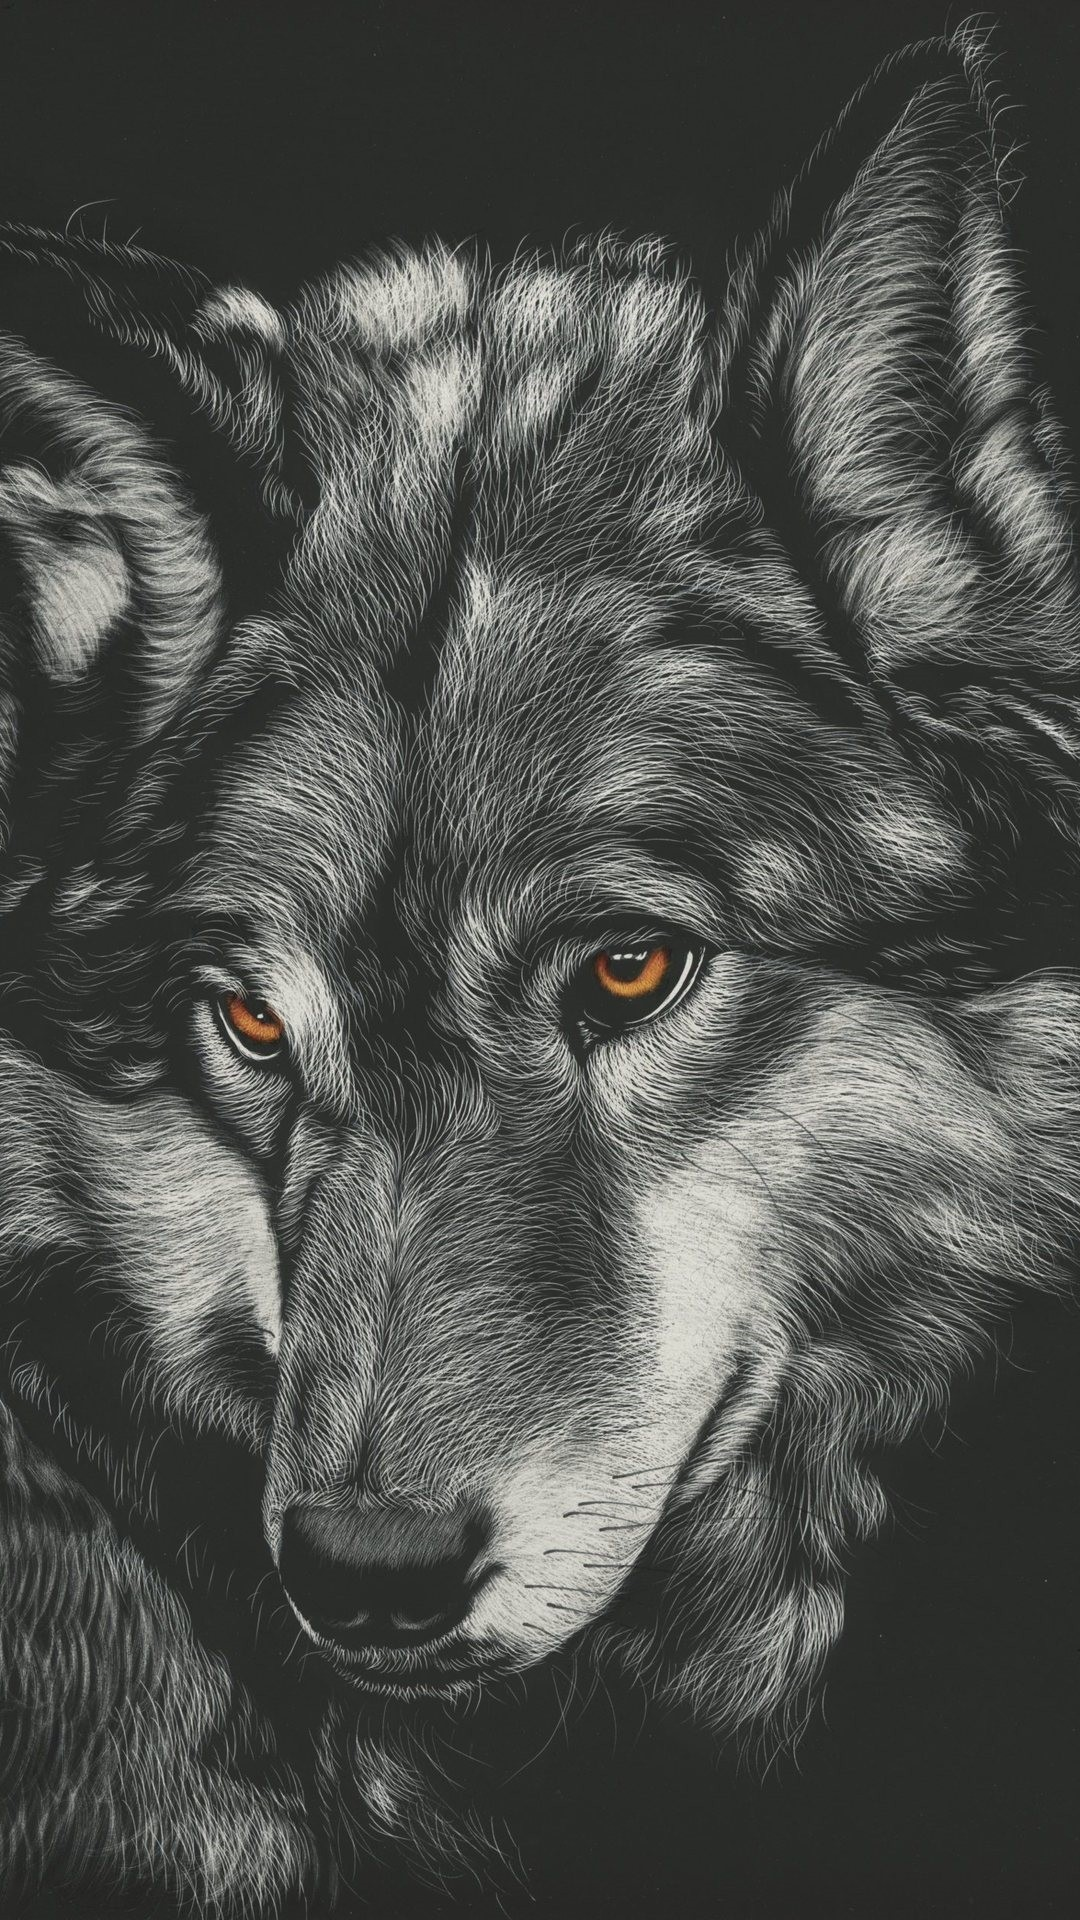 Wolf wallpaper for iphone